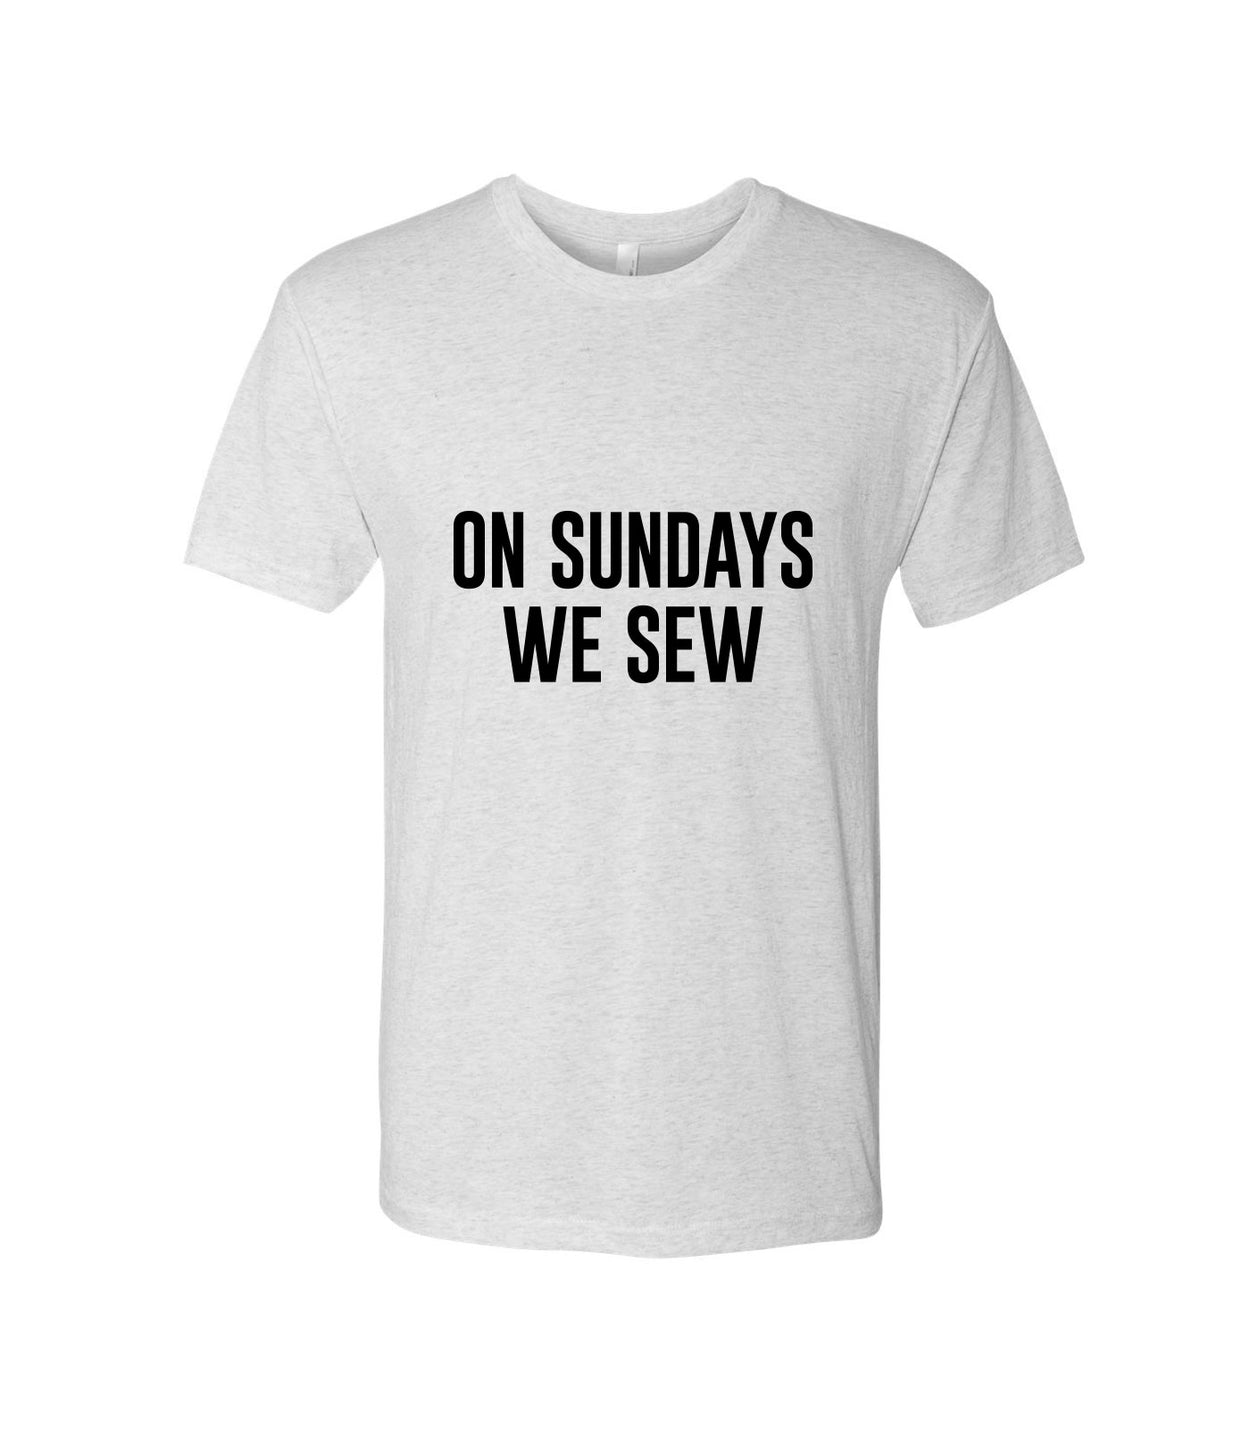 On Sundays We Sew (White)